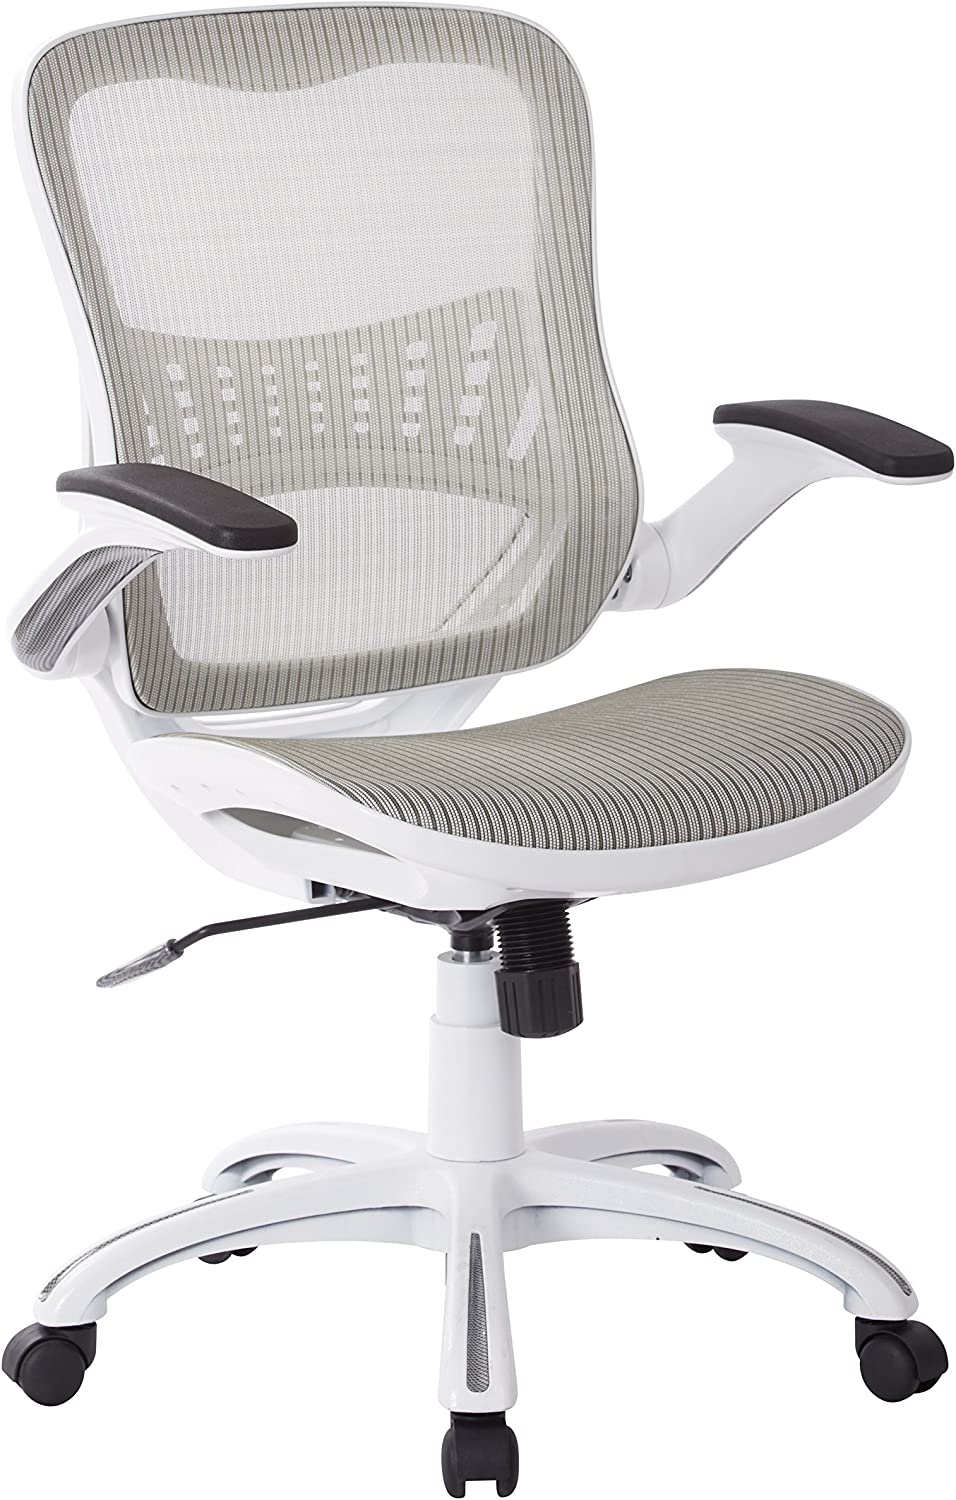 AVE SIX Riley Office Chair